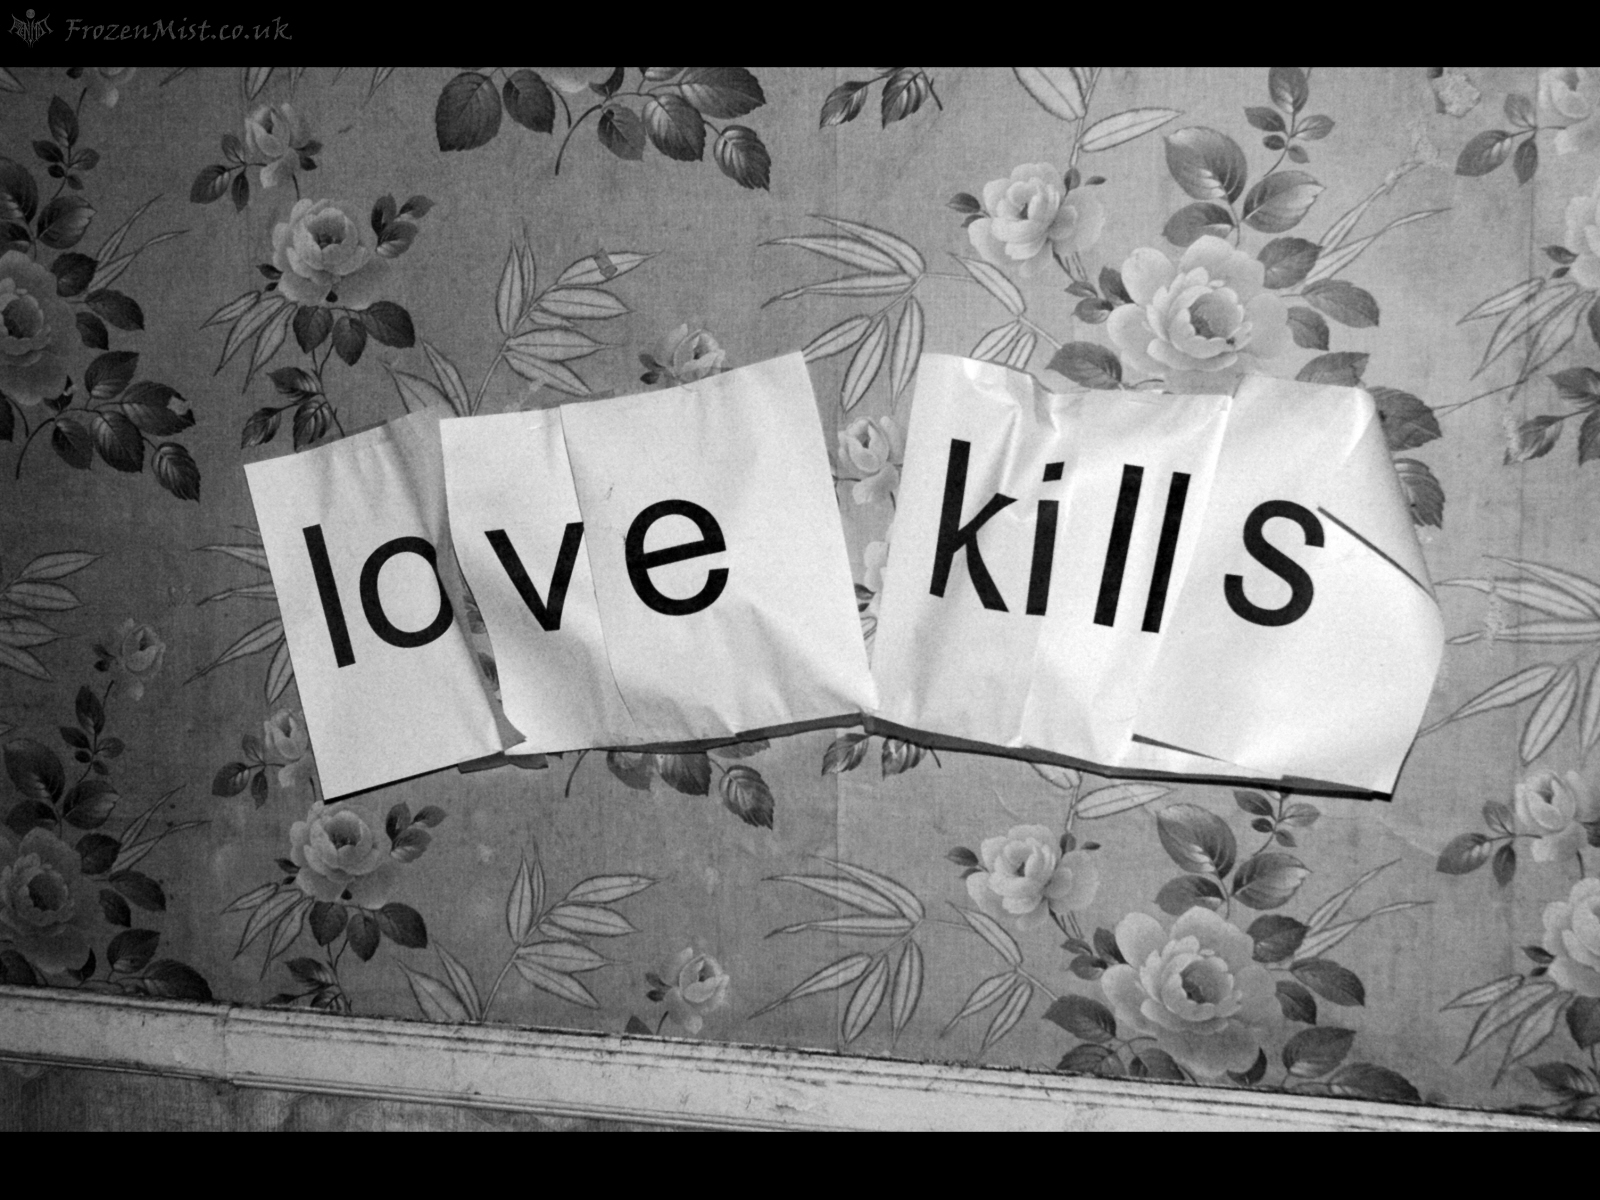 Love Kills Wallpaper : Love Kills Wallpaper - FrozenMist